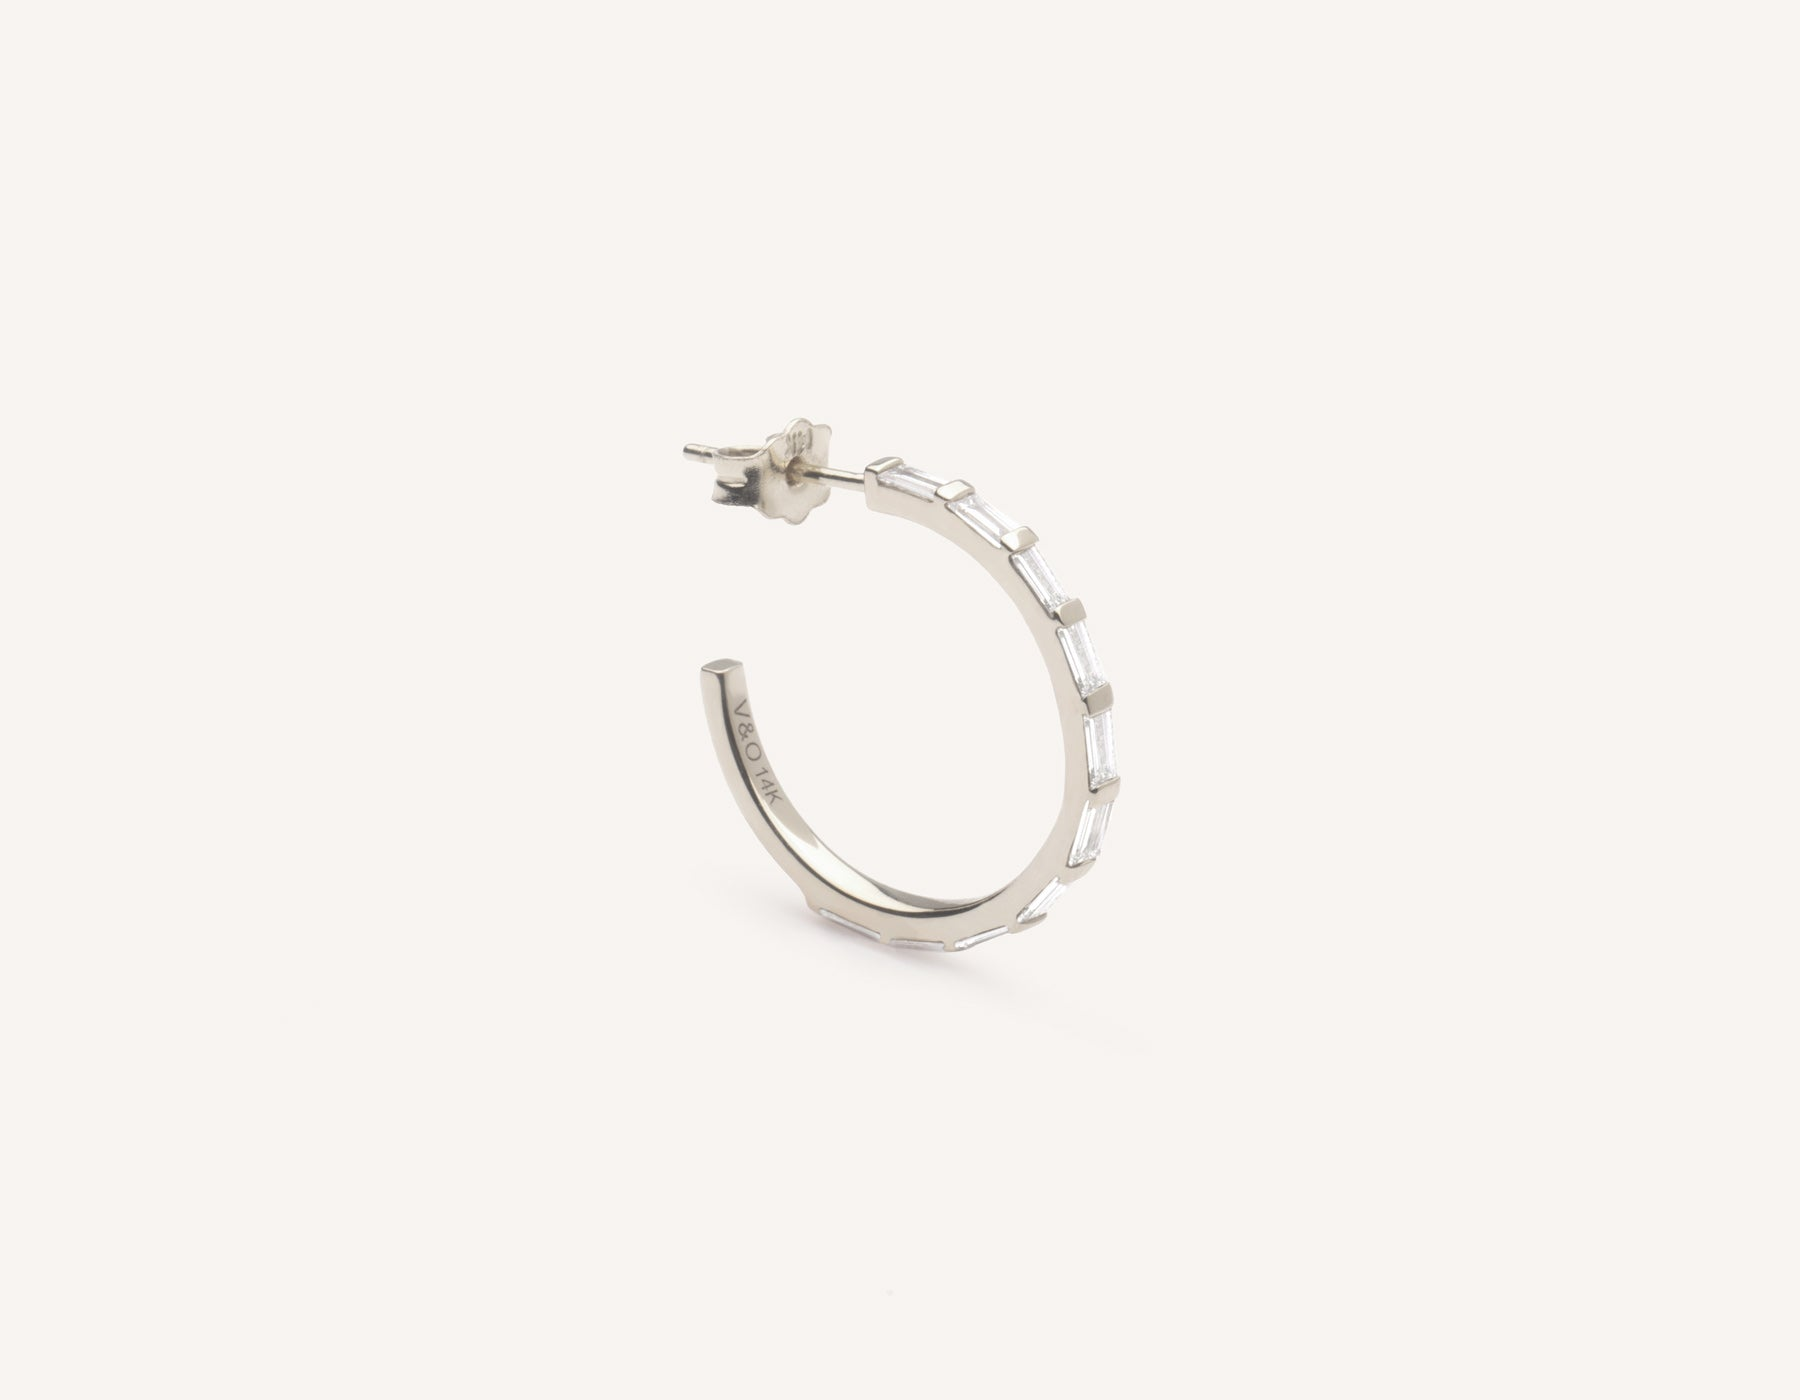 Vrai & Oro simple classic 14k solid gold Baguette Pave Diamond Hoop earrings, 14K White Gold